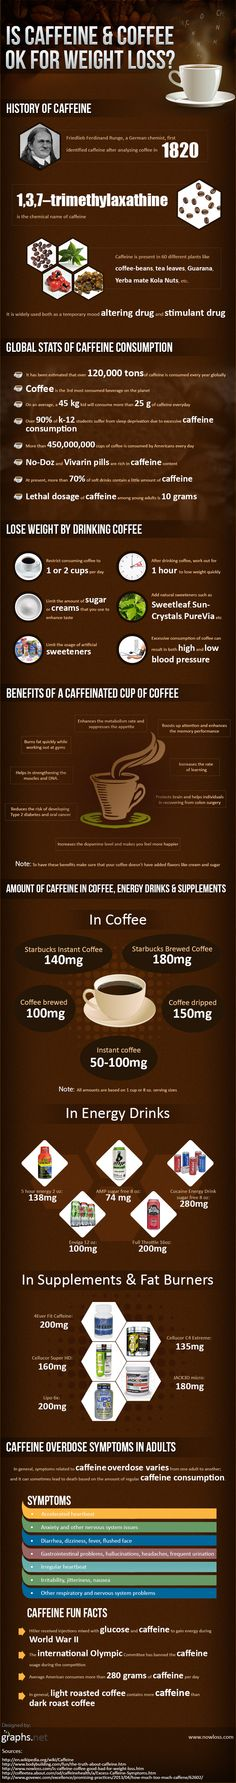 Is caffeine and coffee ok for weight loss?